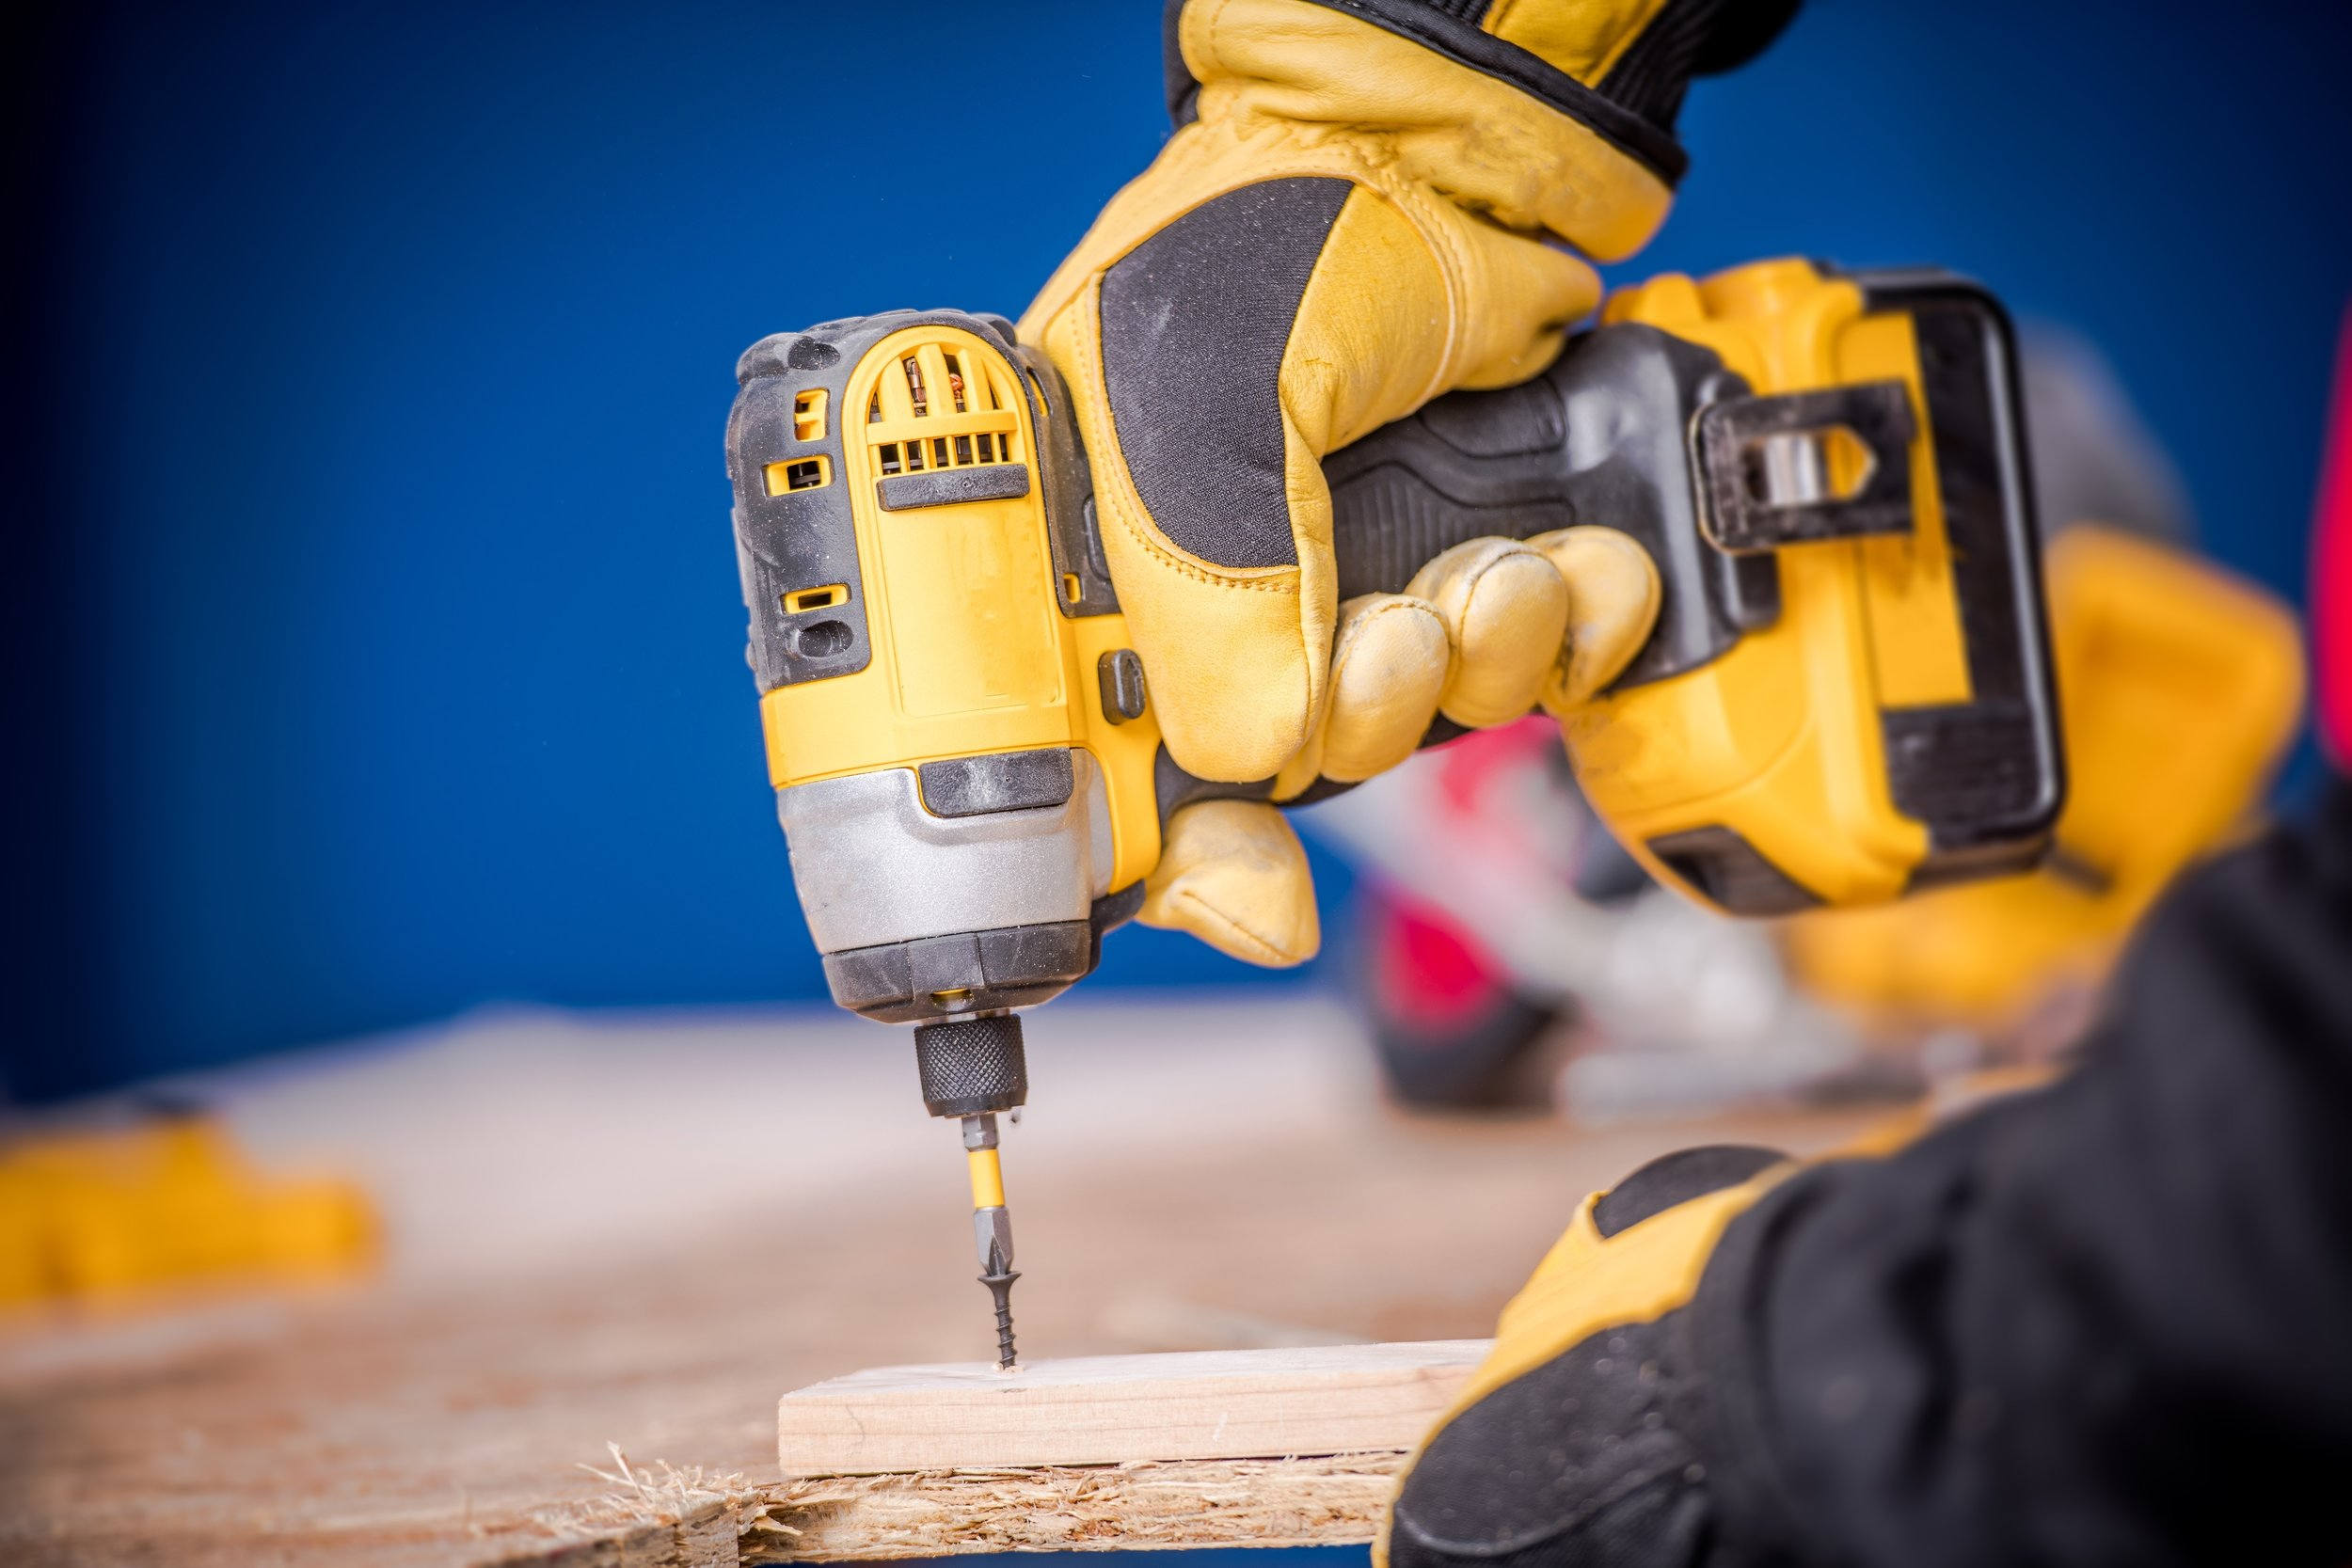 Heavy Duty Construction: What to Look for in a Cordless Drill Holster for Your Tool Belt